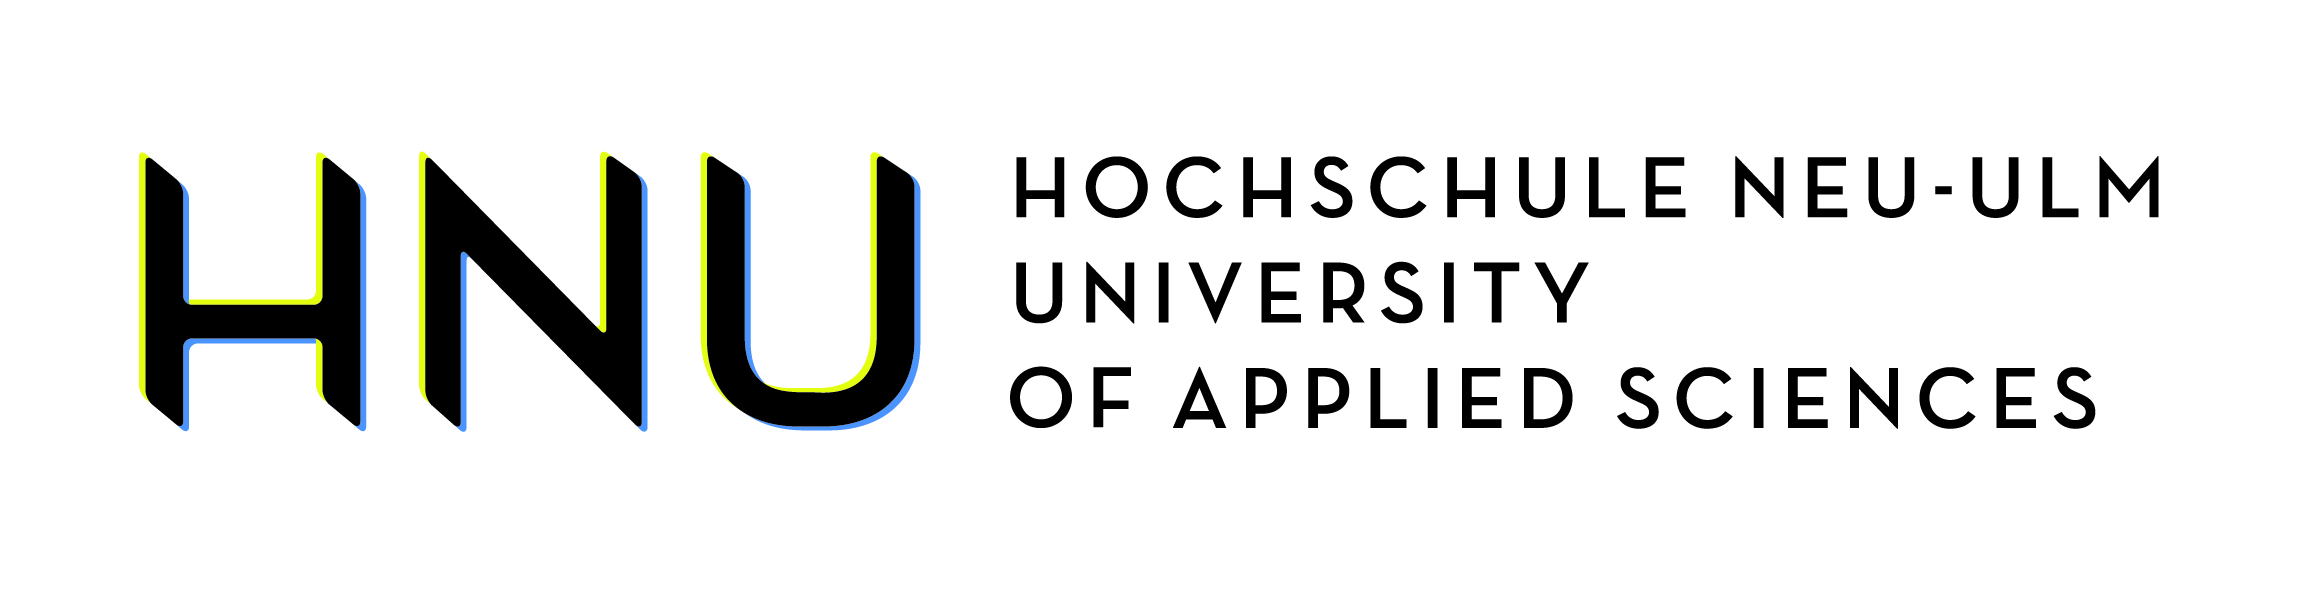 Logo Hochschule Neu-Ulm – University of Applied Sciences